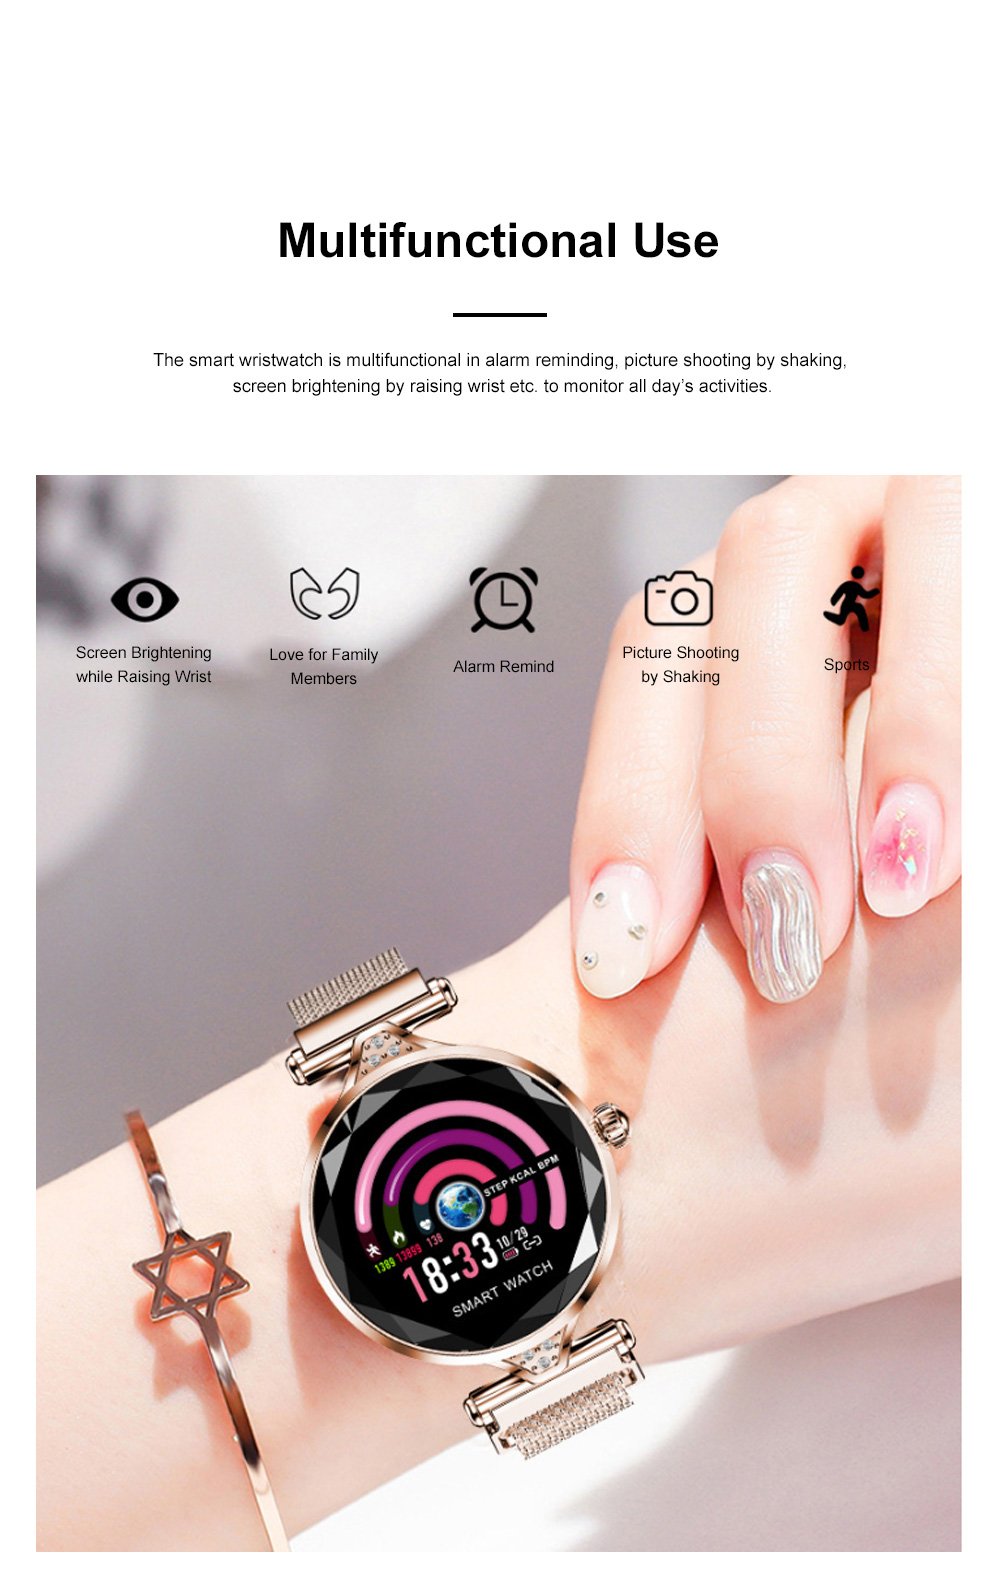 Multifunctional Smart Wrist Watch for Women Daily Wear Fashionable and Smart Bracelet Bluetooth Colorful Screen Wristwatch 5